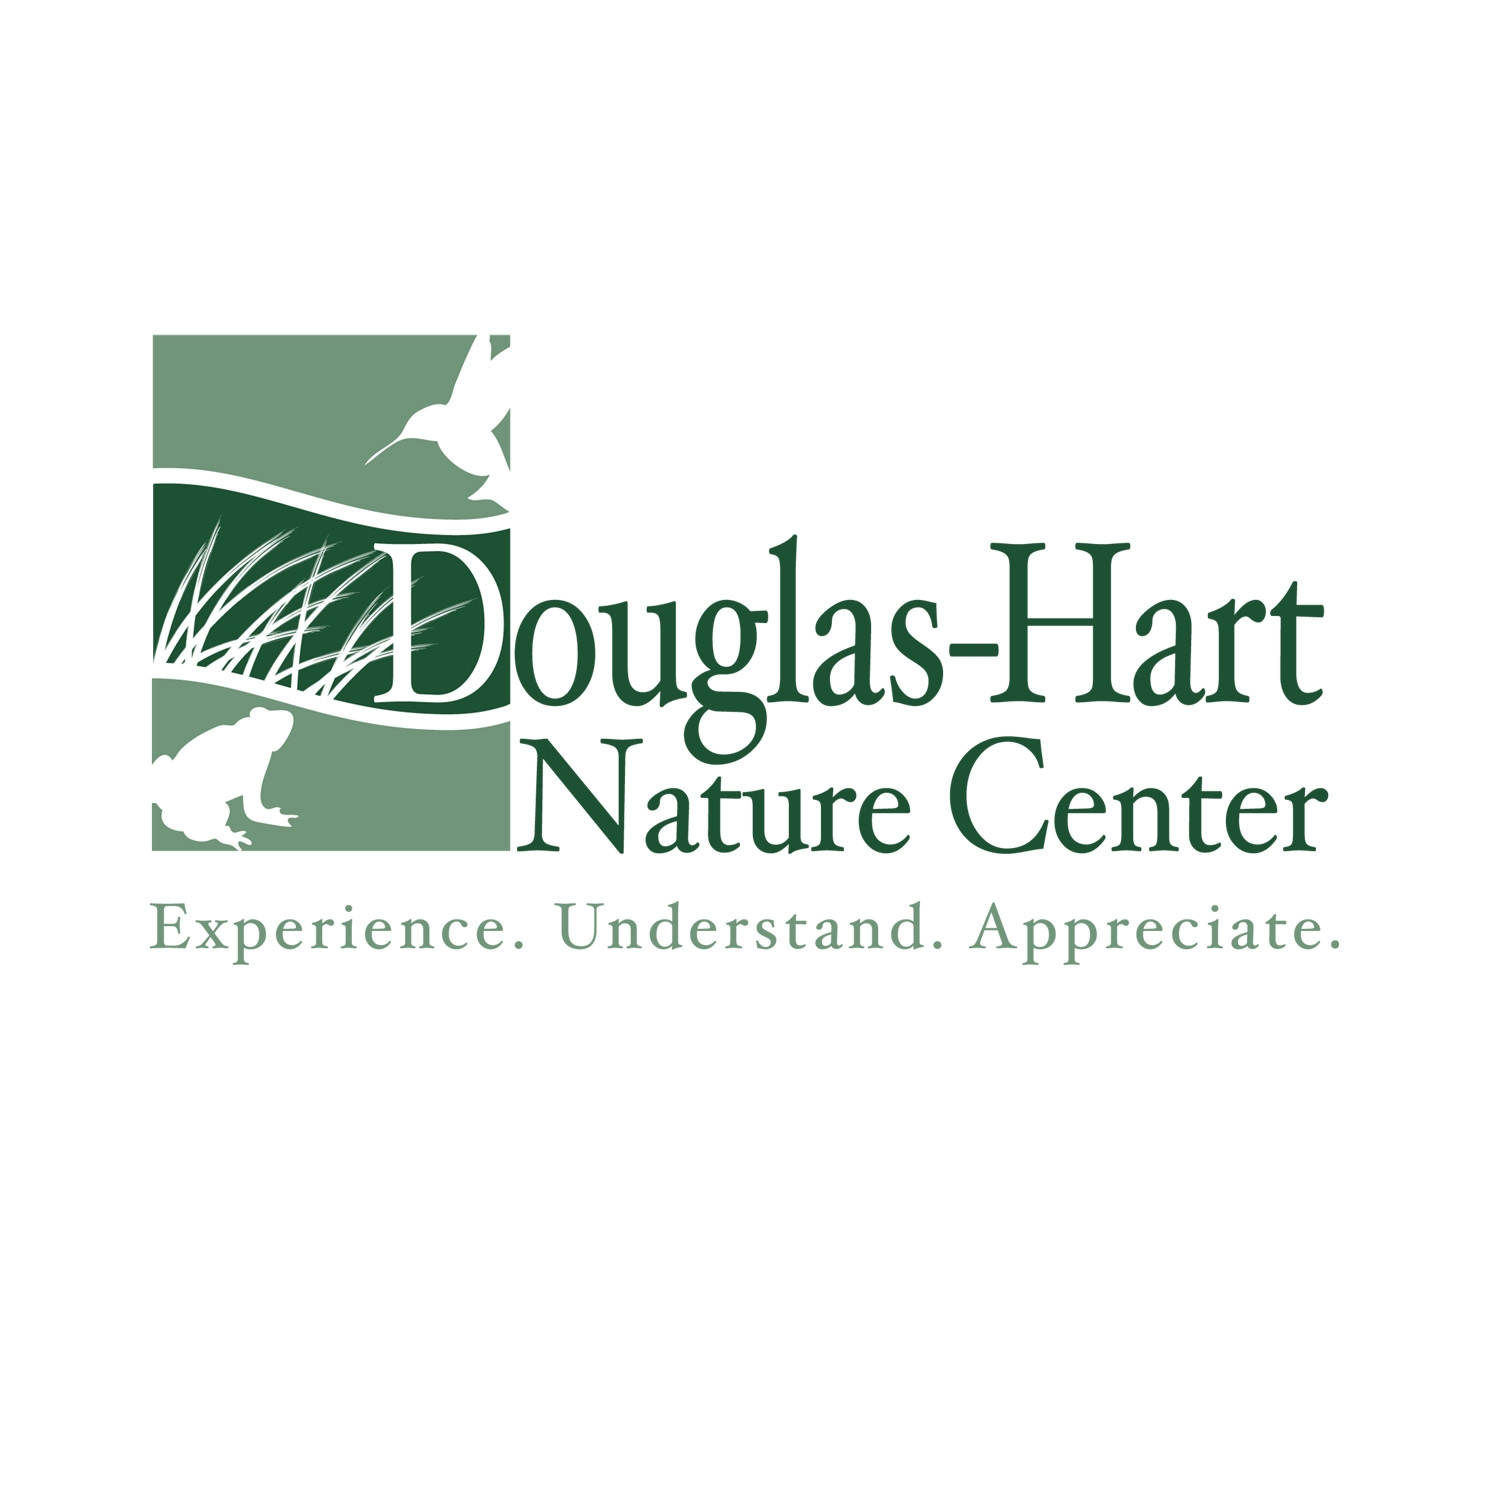 Summer Interships Available at Douglas-Hart